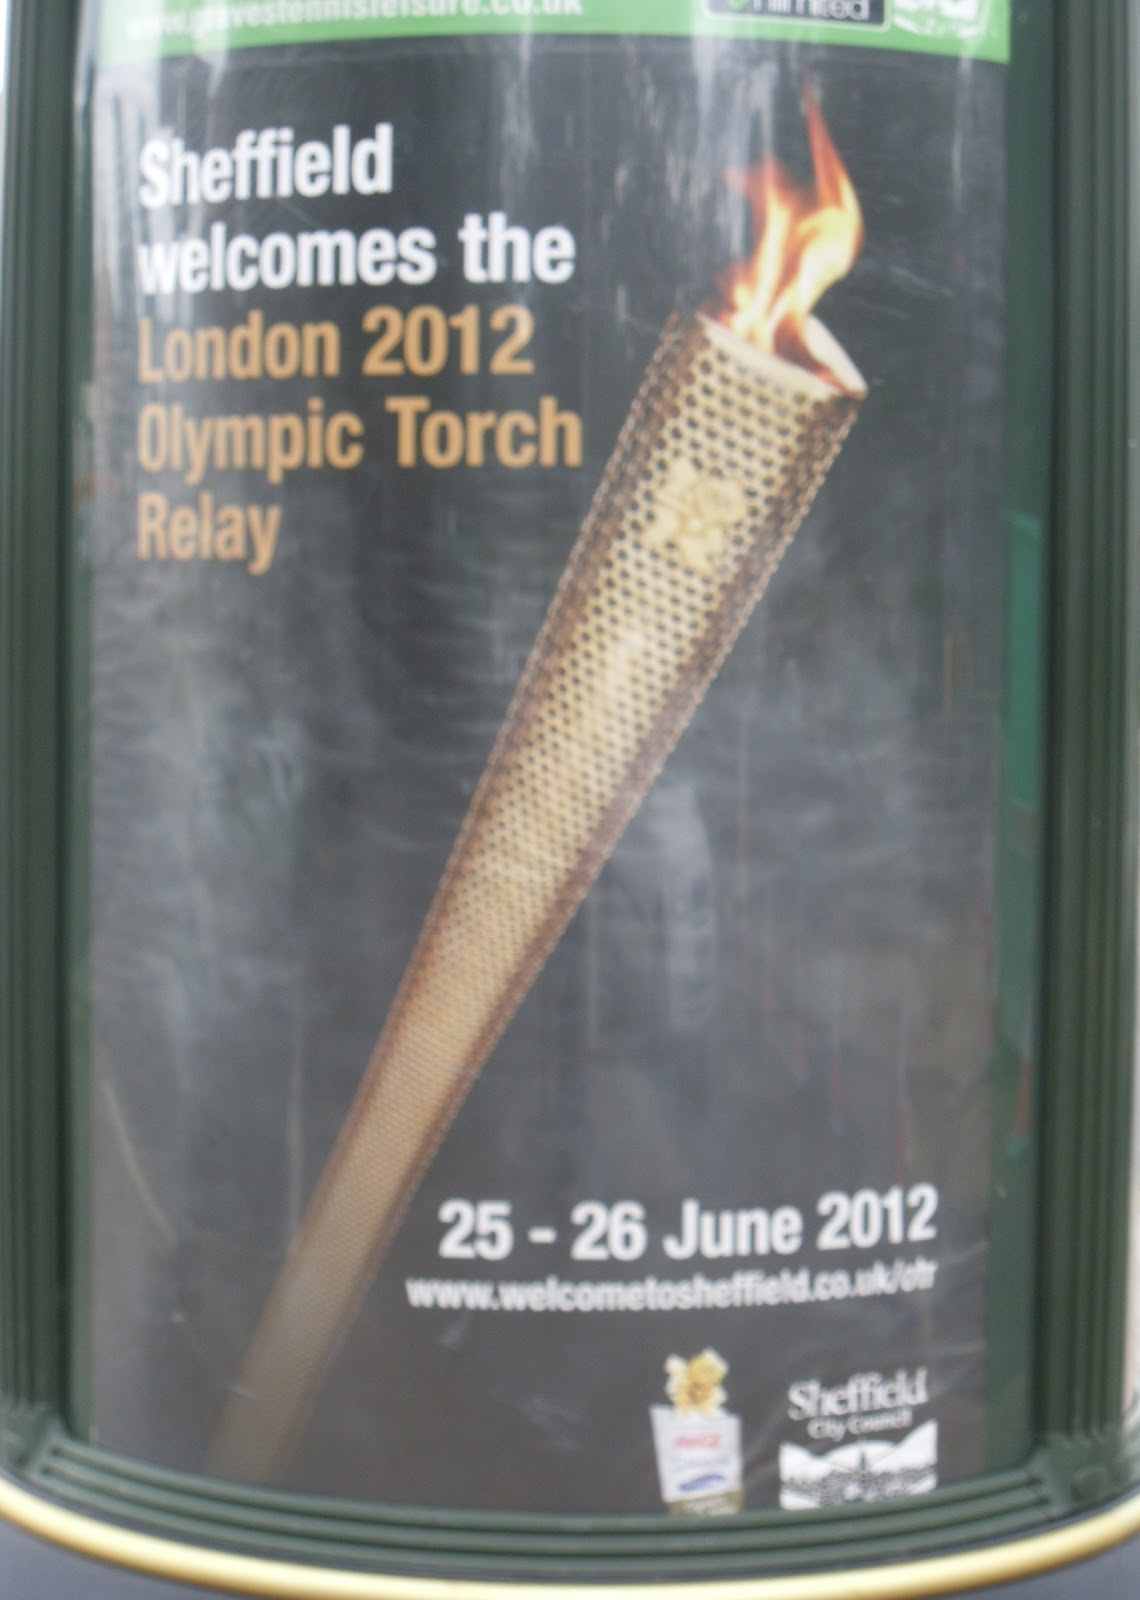 The olympic torch as a personification of unity and peace